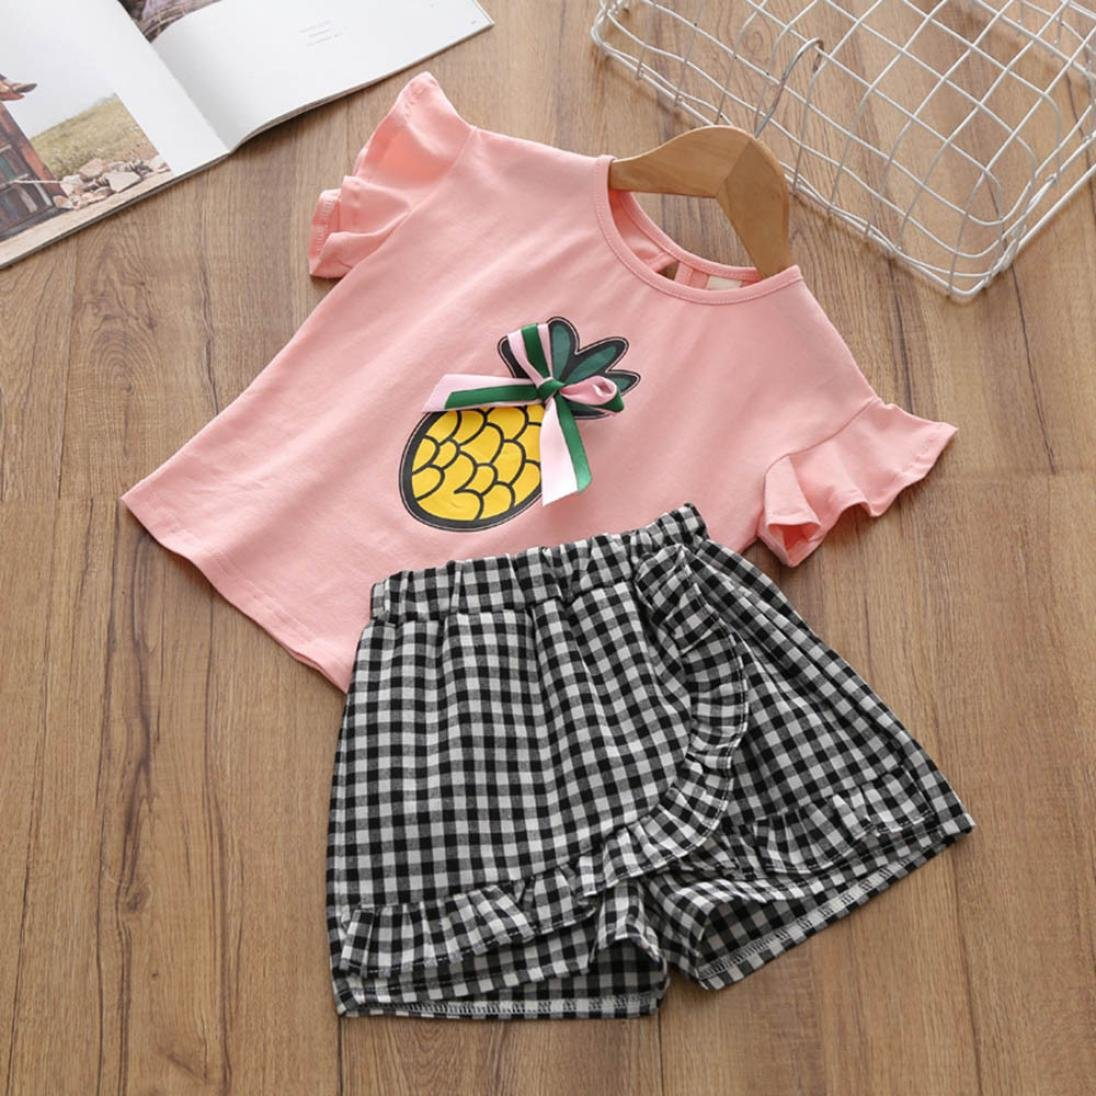 WARMSHOP Girls Outfit Clothes Set Short Sleeve Embroidery T-Shirt Tops Ruffle Plaid Shorts 1-6 Years